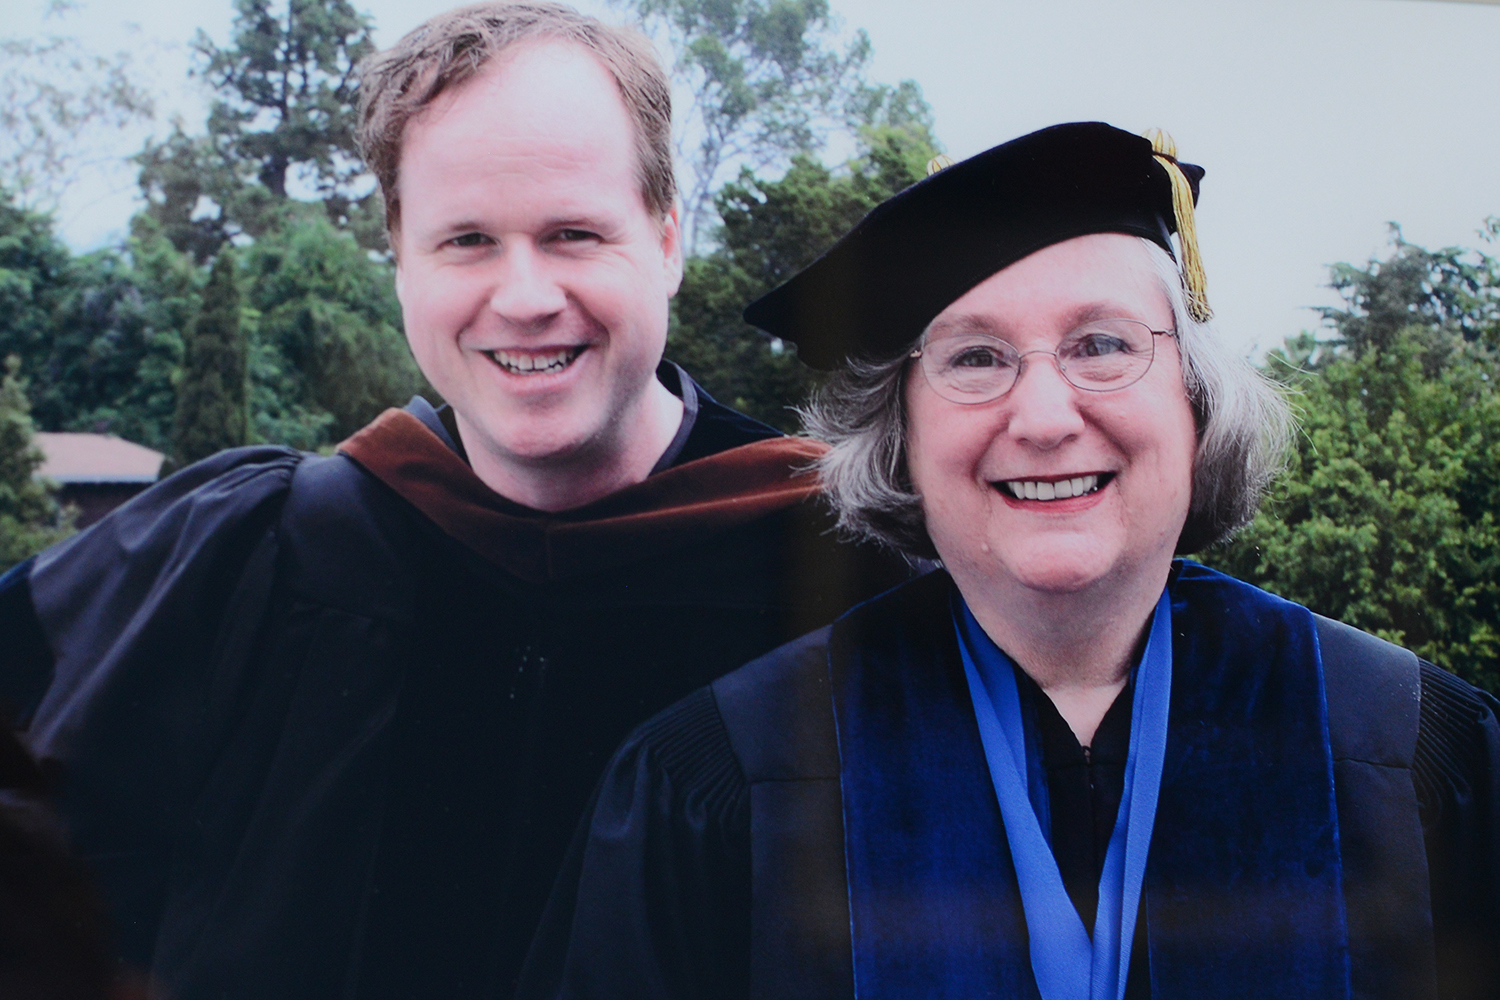 """Joss Whedon '87 presented Jeanine Basinger, the Corwin-Fuller Professor of Film Studies, with an honorary degree from the American Film Institute Conservatory in 2006. This photograph is on display in the """"Buffy to Bard"""" exhibit."""